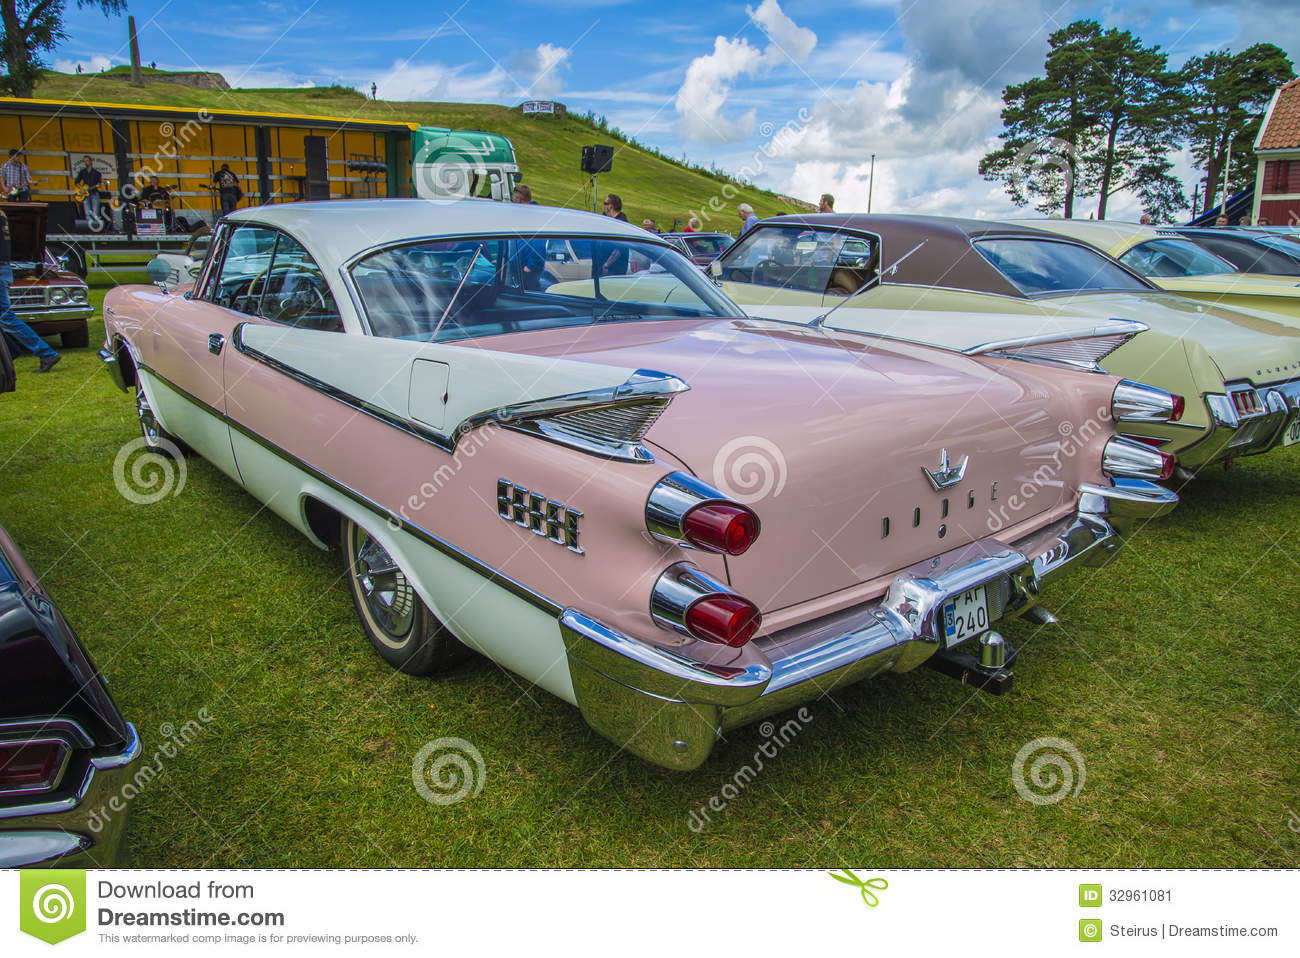 British Rail Class 81 furthermore Free 1957 chevy clipart further Stock Image Dodge Coro  Lancer Image Shot Fredriksten Fortress Halden Norway Annual Classic Car Event Image32961081 also 1959 Chevrolet Kingswood For Sale In Parkers Prairie Minnesota 56361 moreover 428686458251749691. on 1959 power wagon